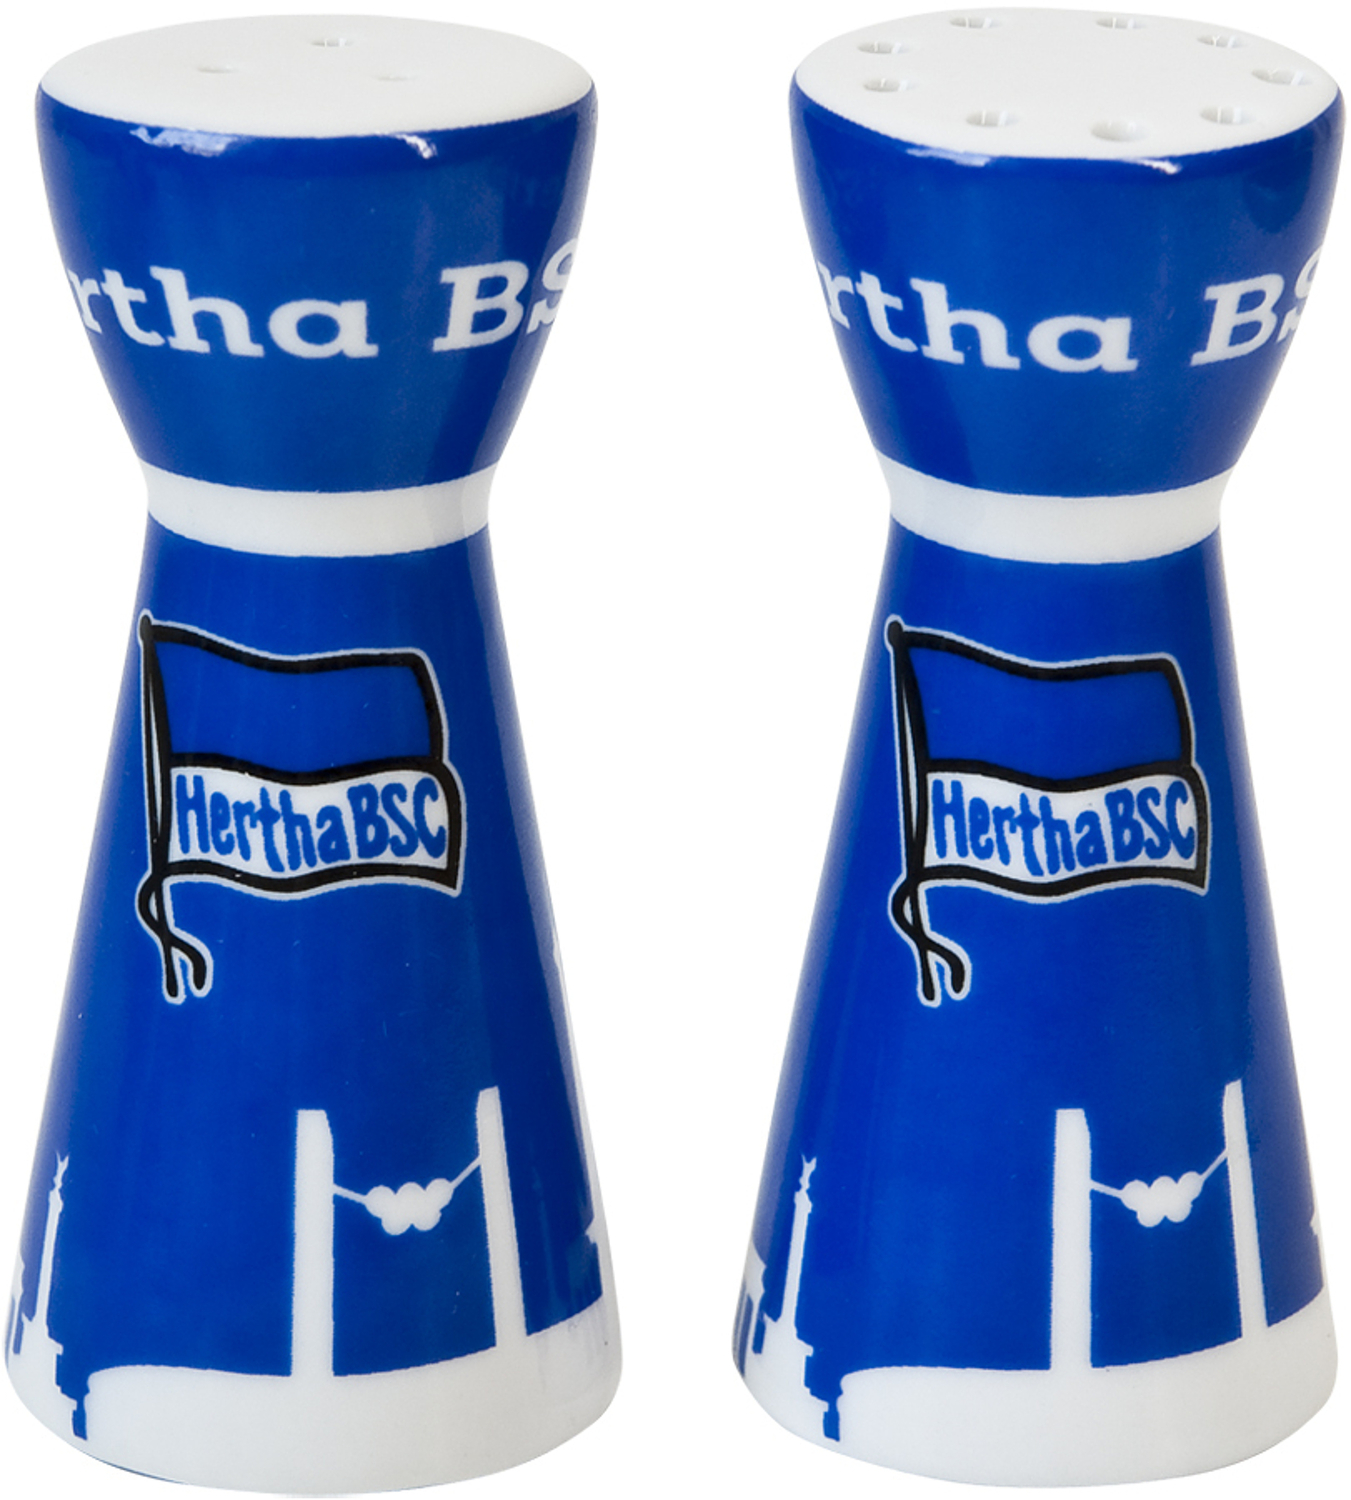 Hertha Bsc Bettwäsche Hertha Bsc Berlin Salz And Pfefferstreuer Set